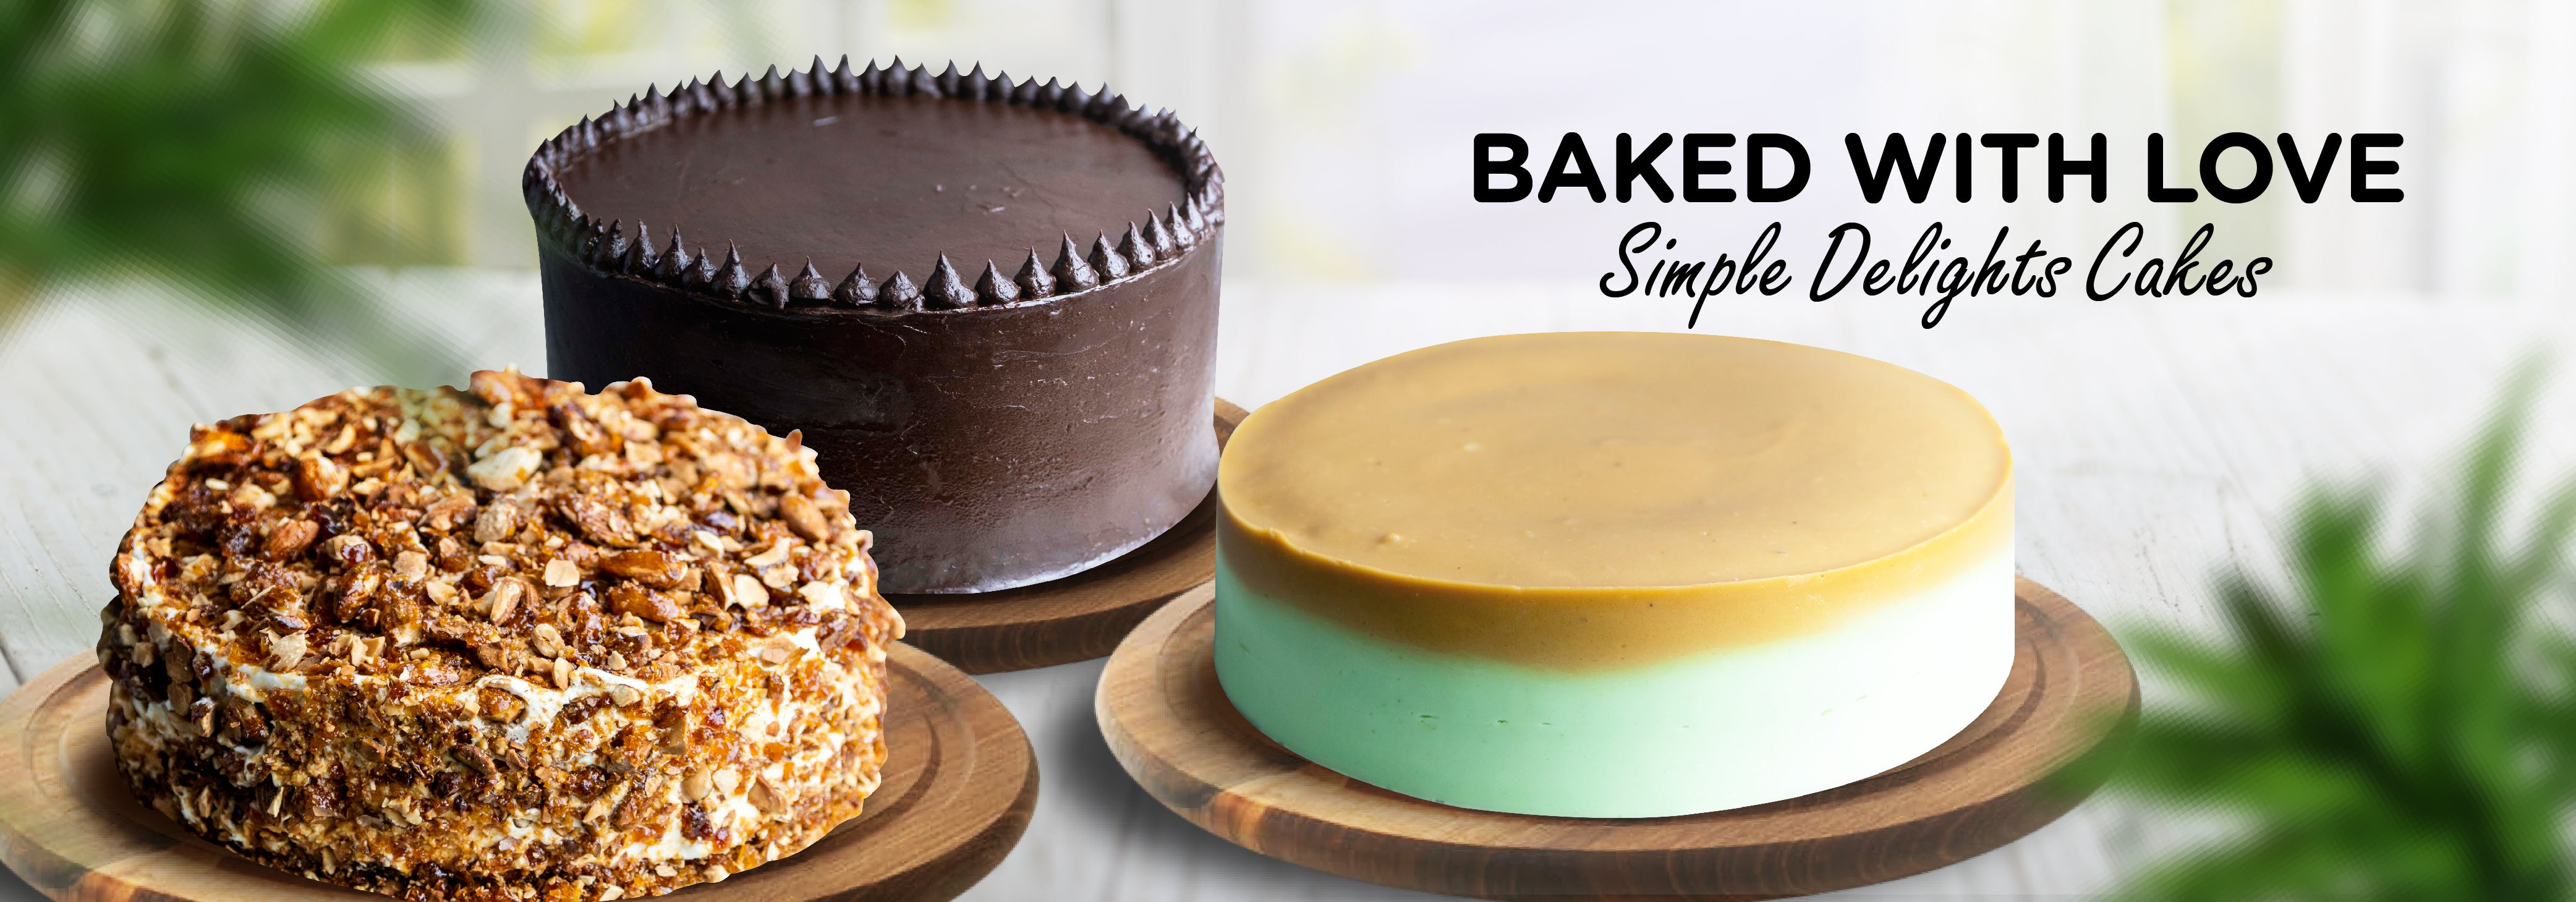 Justine's Cakes & Kueh-Eat Cake Today